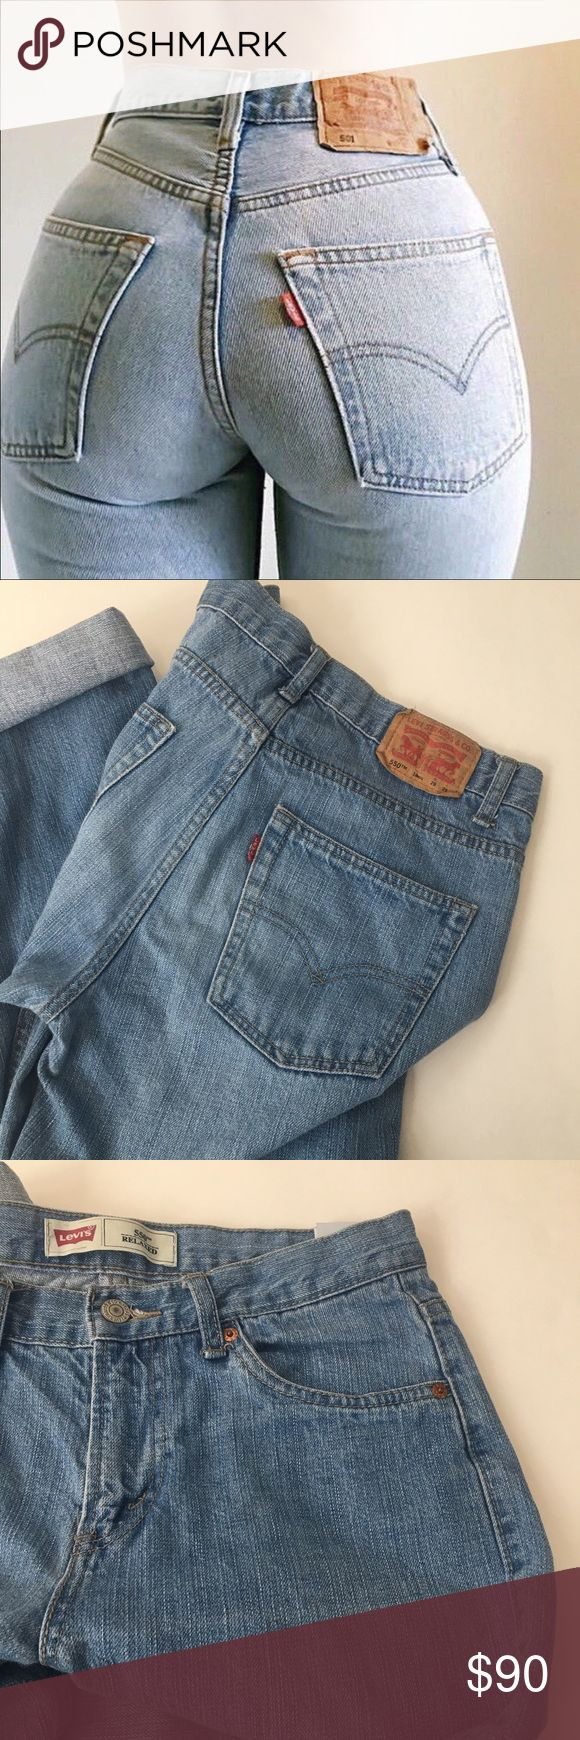 """Gorgeous Light Wash Levi's High Waisted Jeans Price is firm please  Amazing Levi's 550 Vintage Mom Jeans  High waisted and make your butt look amazing  Perfect light blue color  No stains or damages whatsoever  Please see measurements for fit Rise 10""""  Waist 29""""  Length unrolled 29""""  ⭐️Top rated seller   All items shipped same day/ next day Urban Outfitters Jeans"""